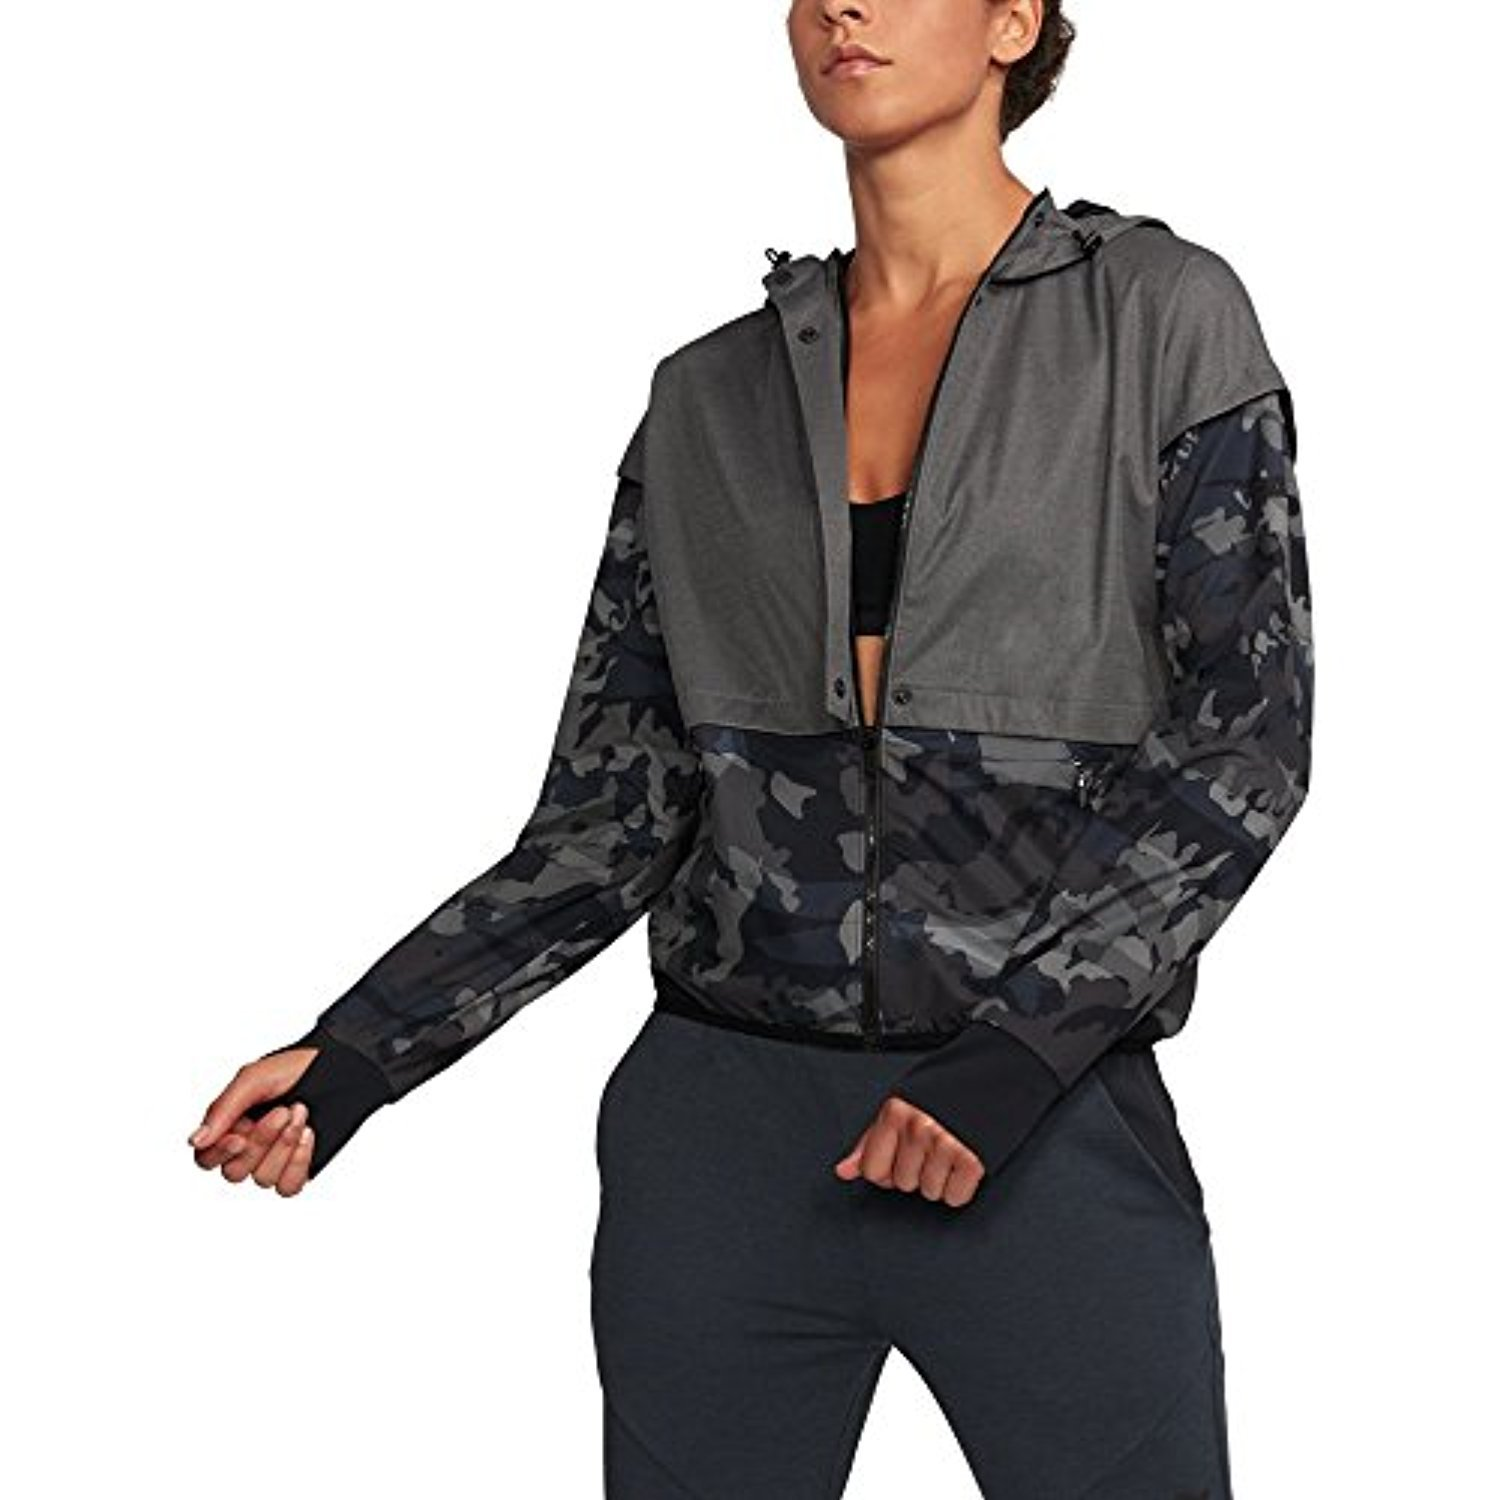 4e3a6d03d1b41f Under Armour UA Unstoppable Gore Windstopper LG Black: Amazon.co.uk:  Clothing